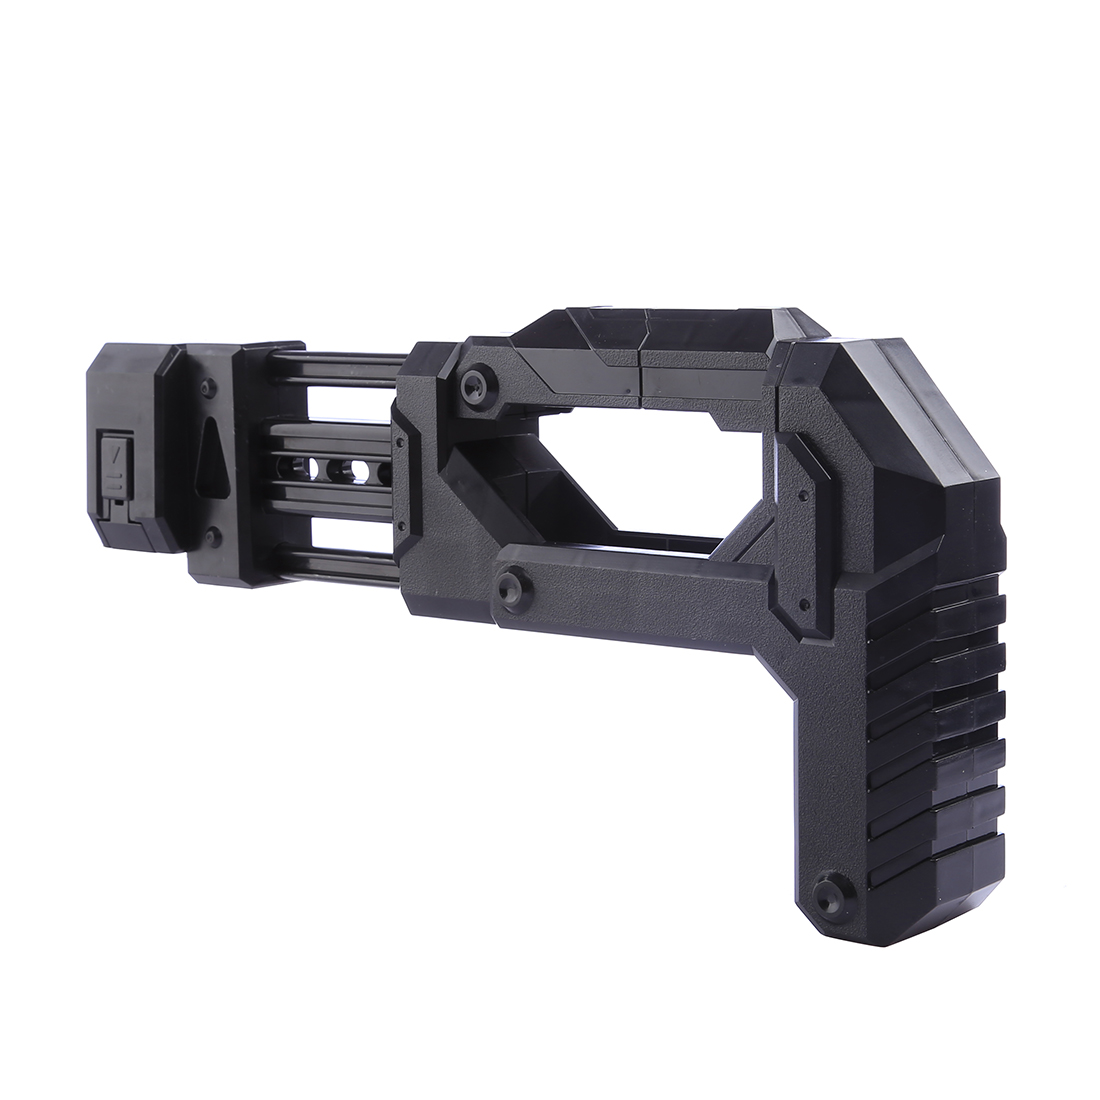 Modified Part Stock For Nerf Elite Series For Toy Gun Type Soft Bullet Blaster Parts Stock For Nerf Modification Black